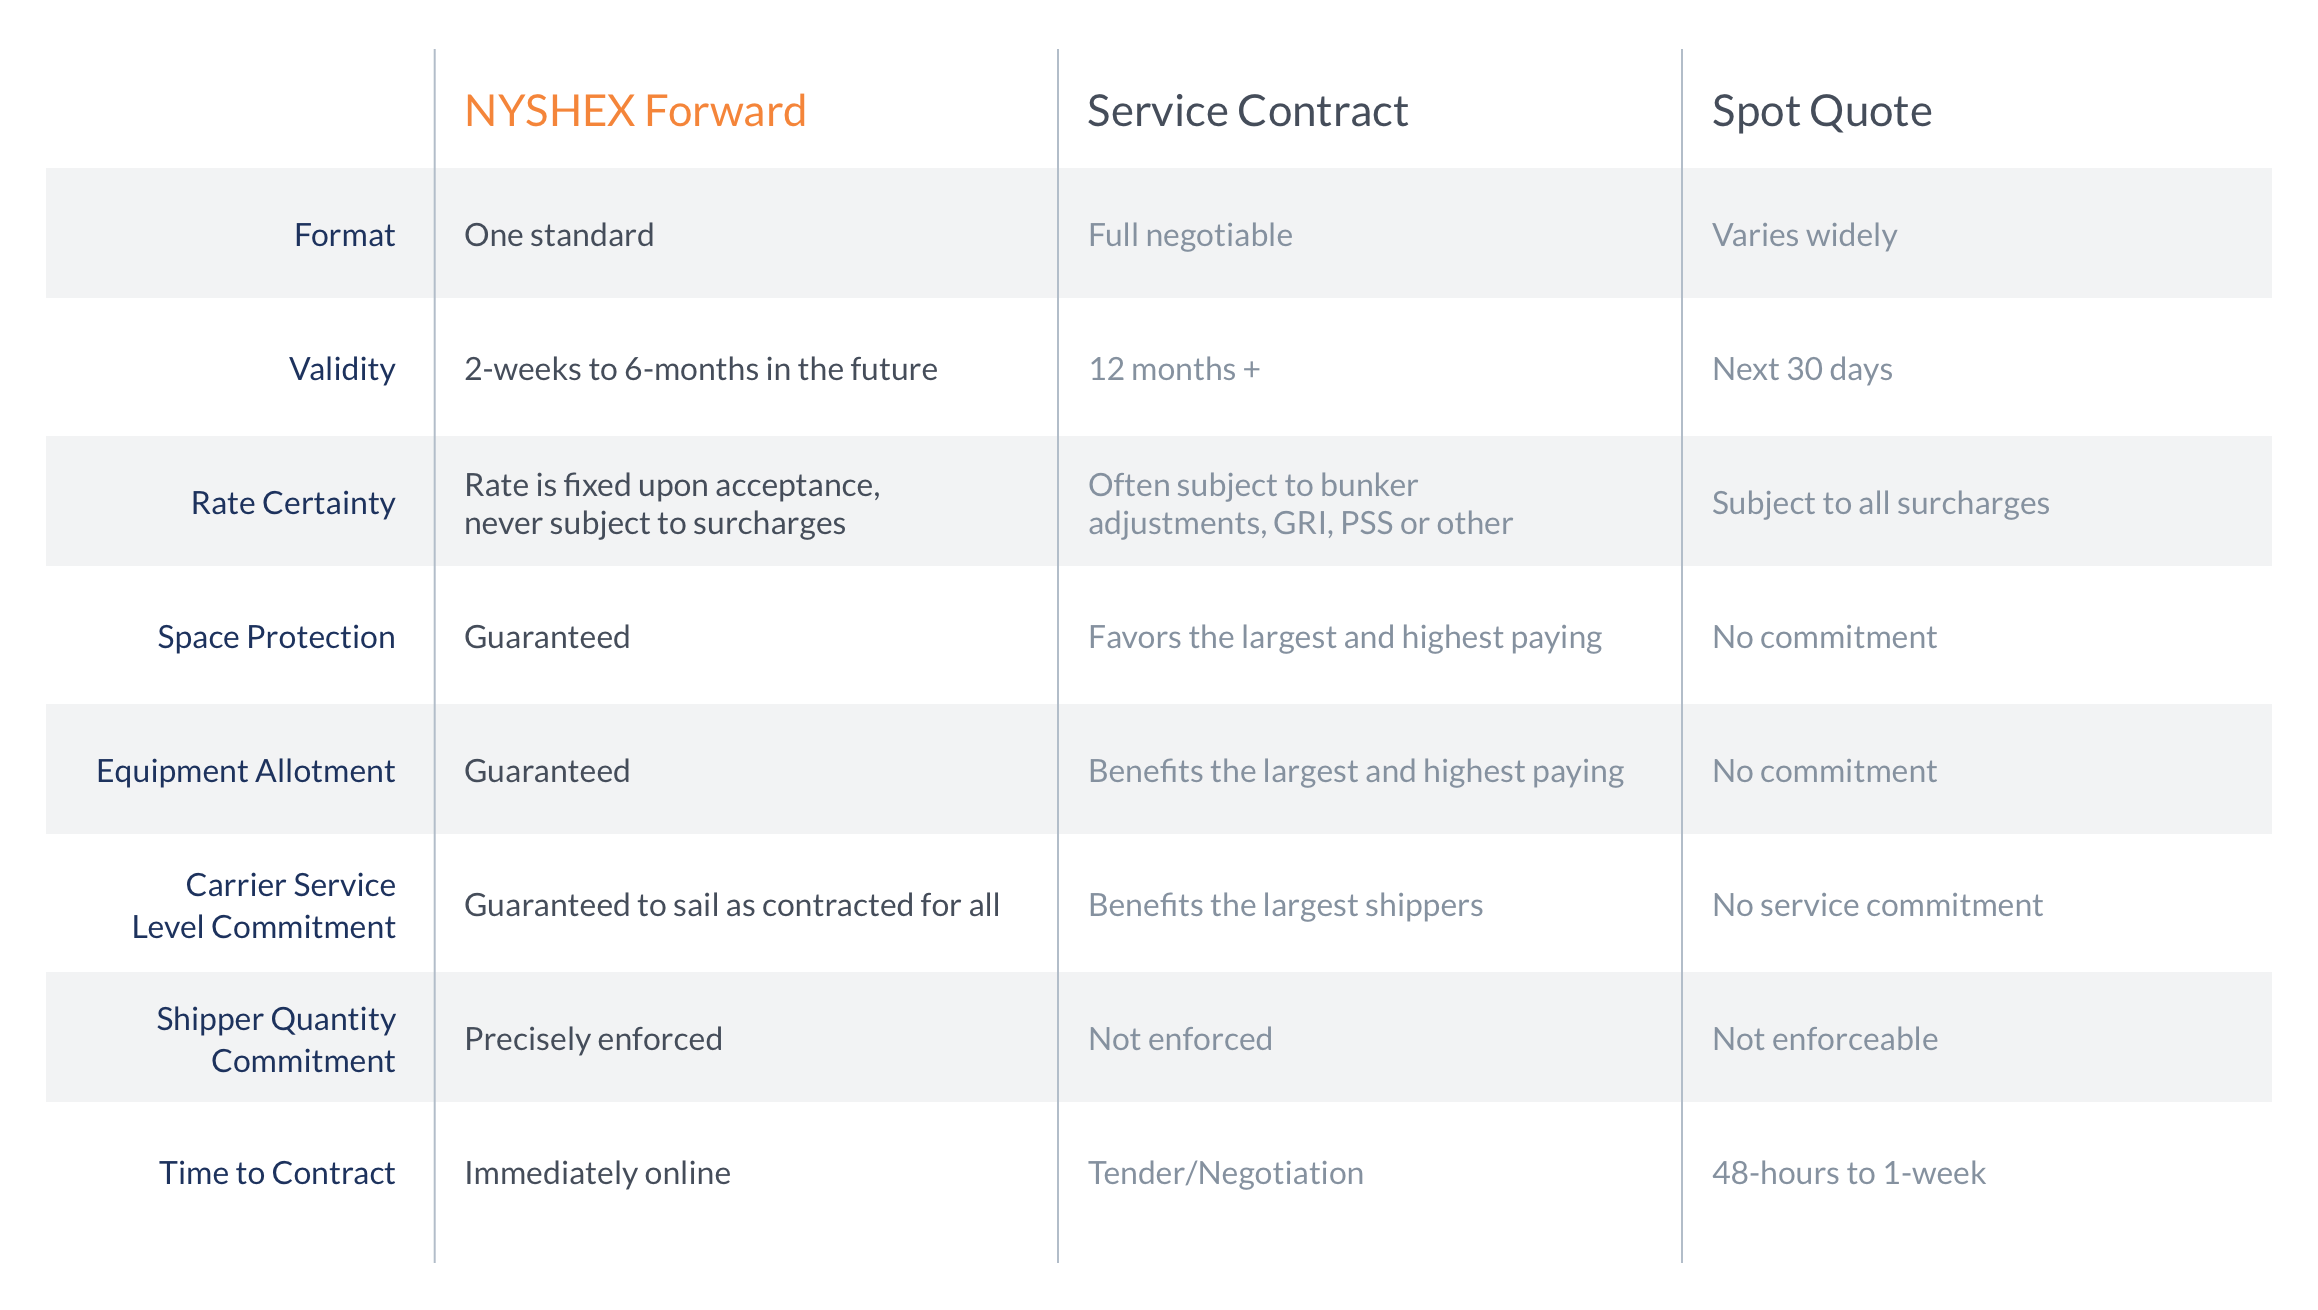 The NYSHEX Forward Contract defined